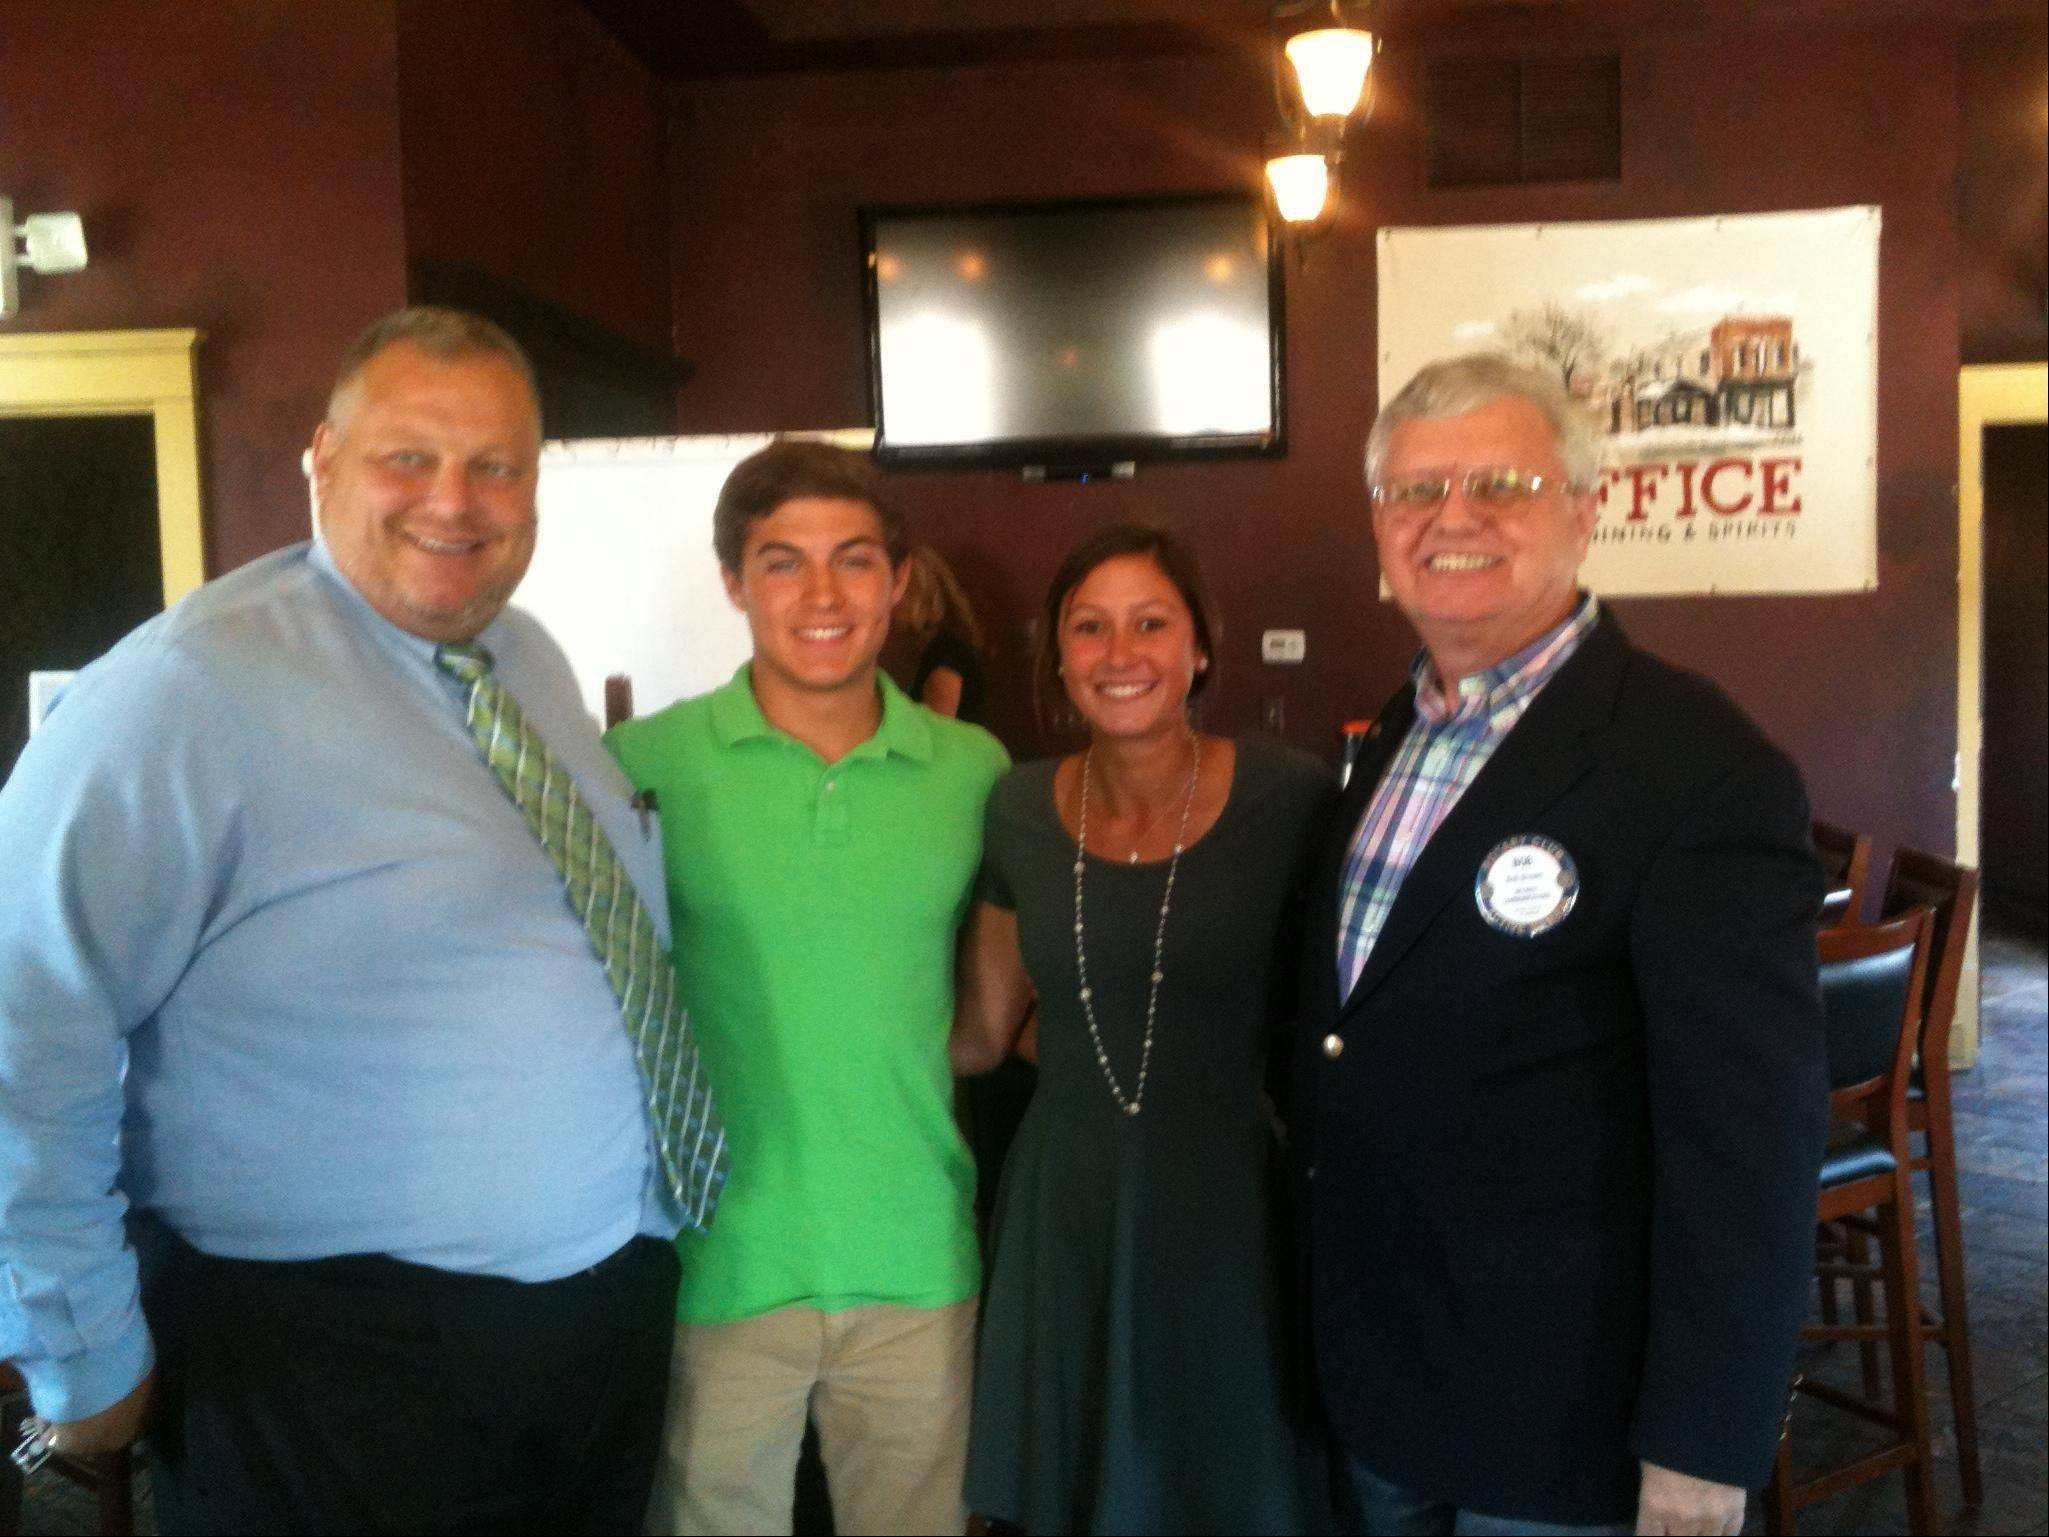 St. Charles Rotary scholarship winners Alex O'Brien and Maria Ranieri join St. Charles Rotary Foundation President Dean Carlson and Rotary Club President Bob Brown.